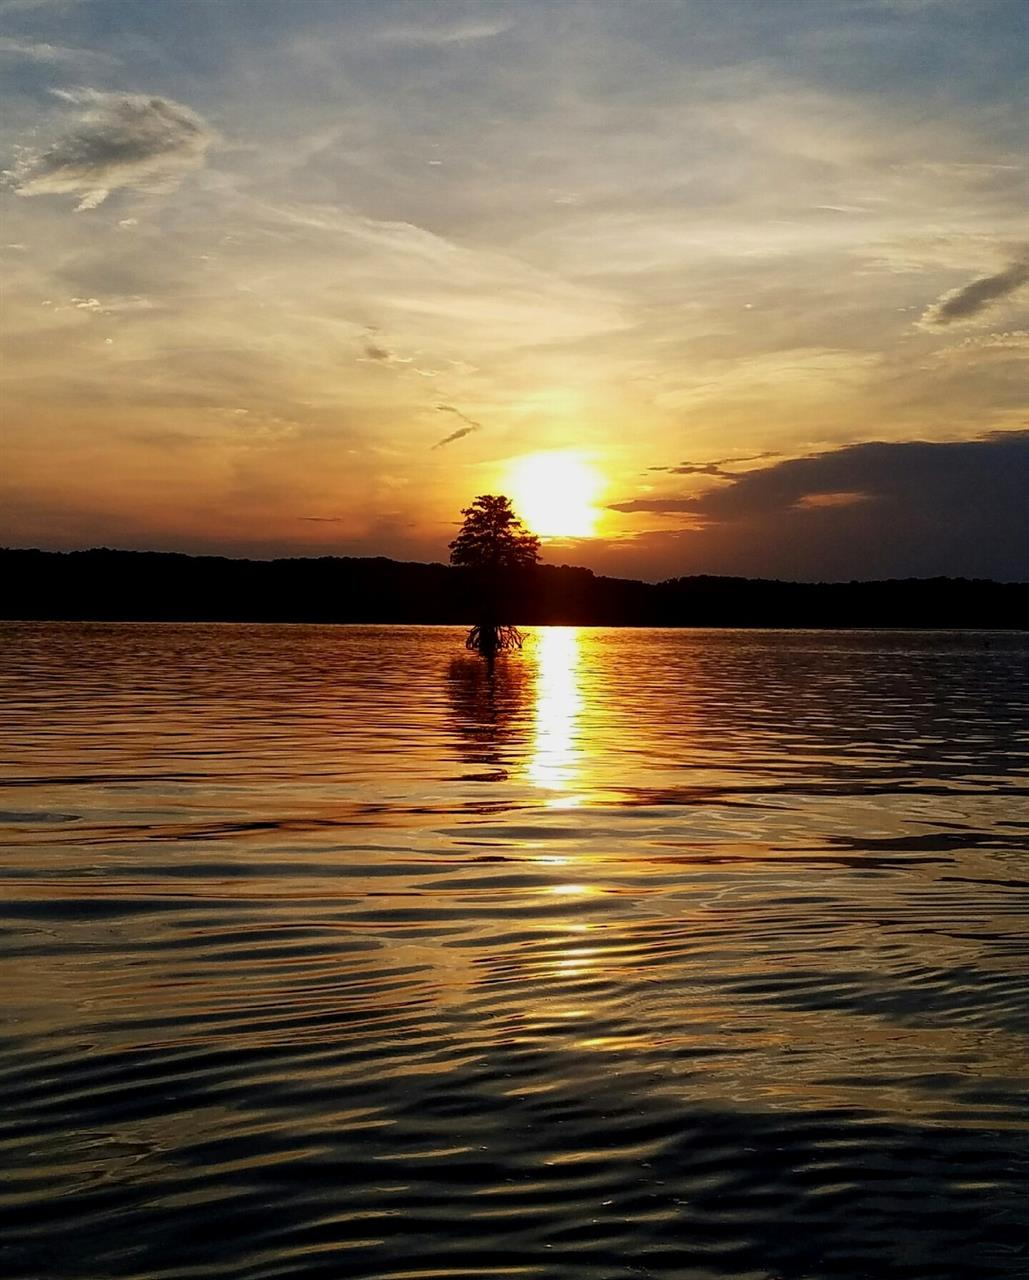 Sunset over Lake Barkley in Cadiz, Kentucky